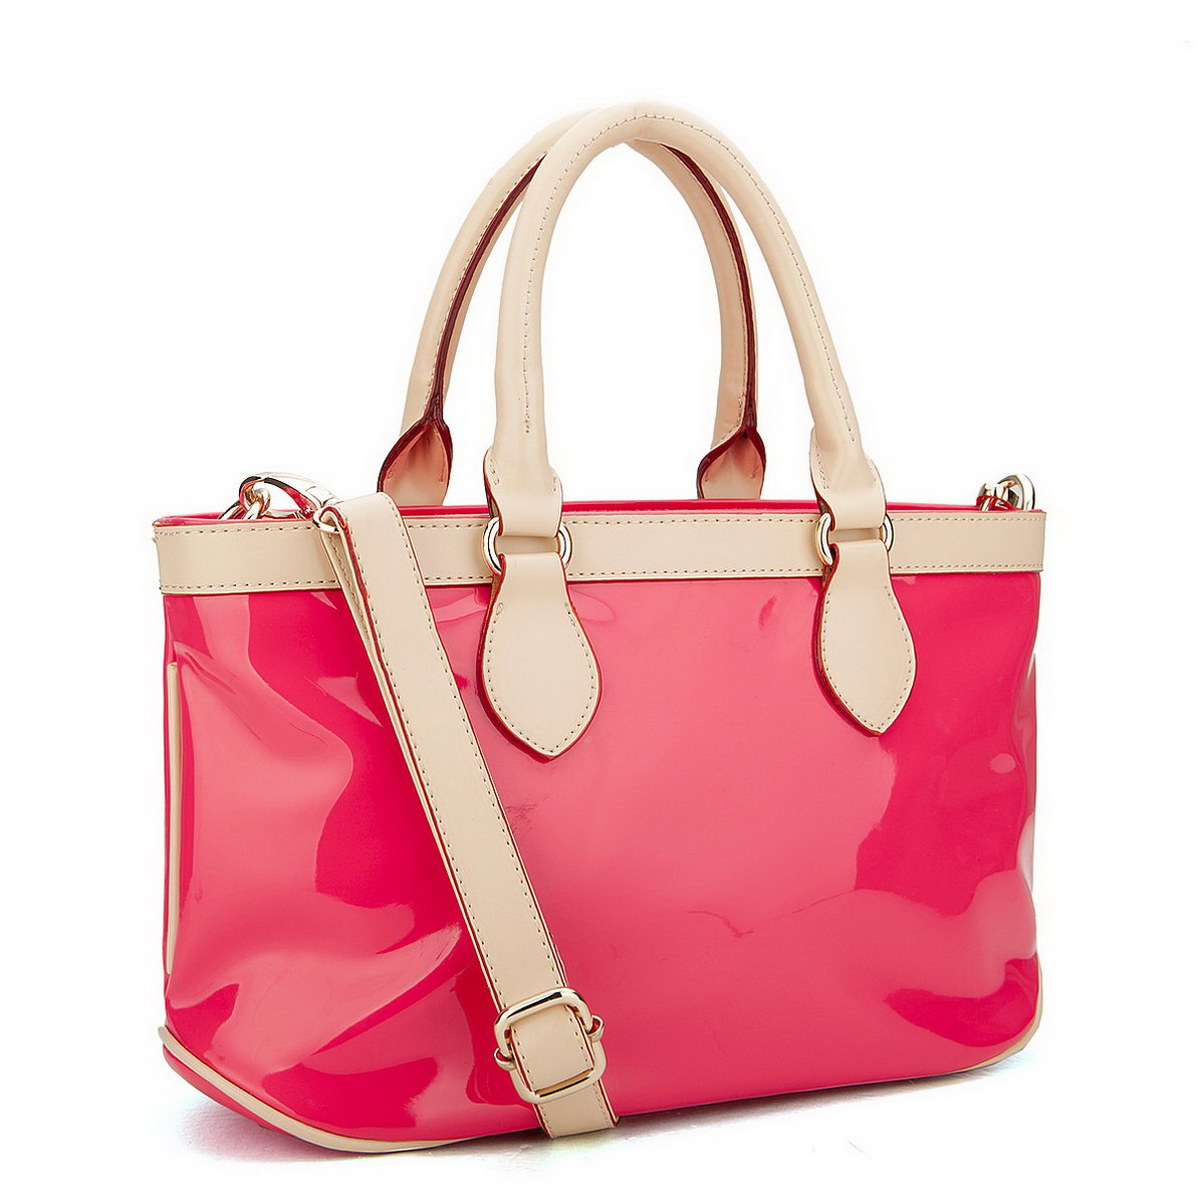 Find great deals on eBay for bag lady bags. Shop with confidence.